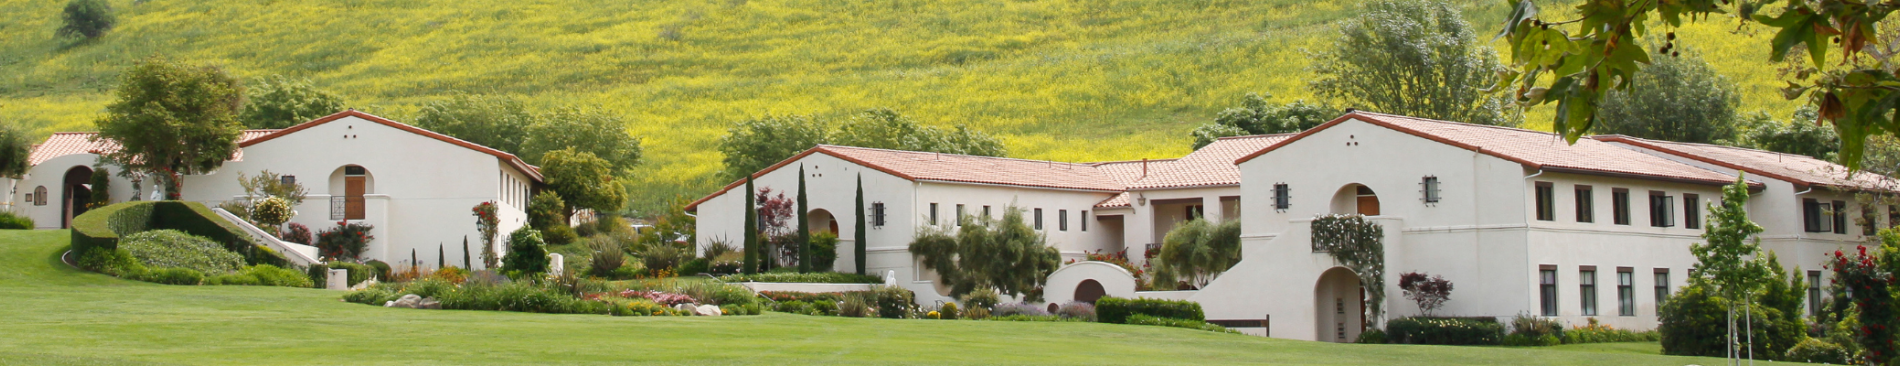 Residence halls on the California campus